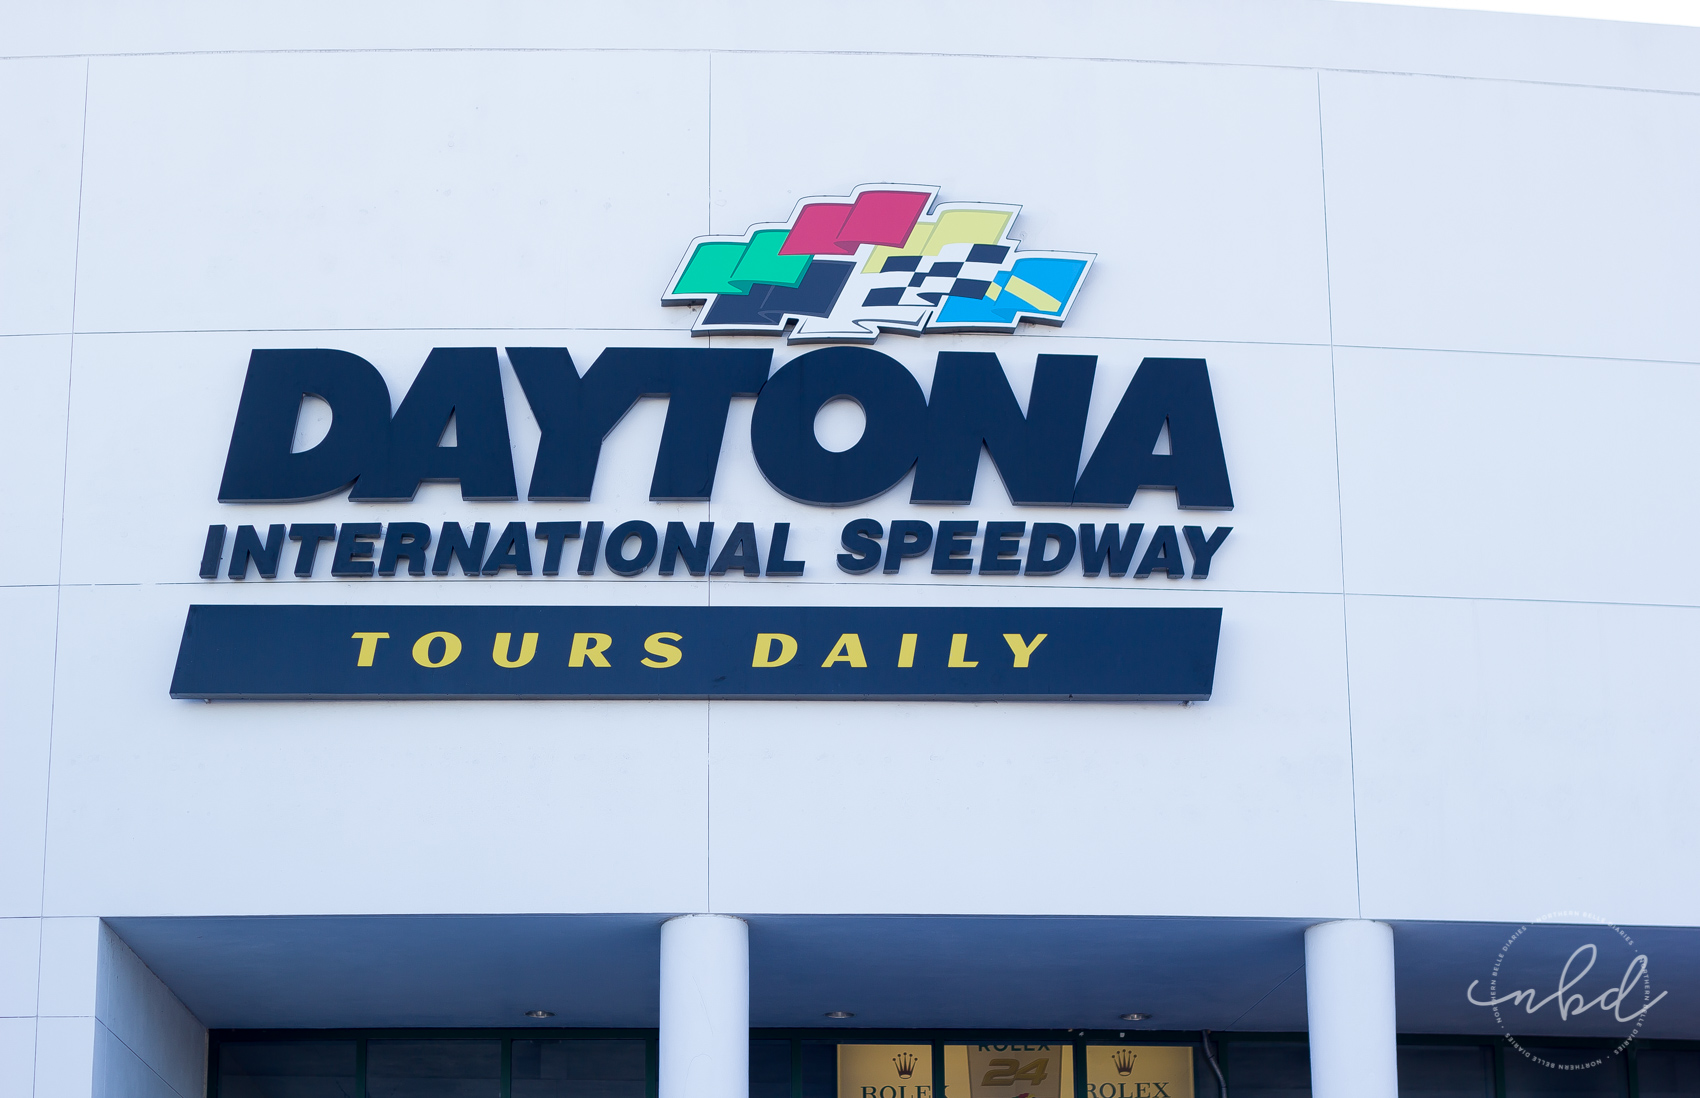 Daytona International Speedway - Daytona Beach